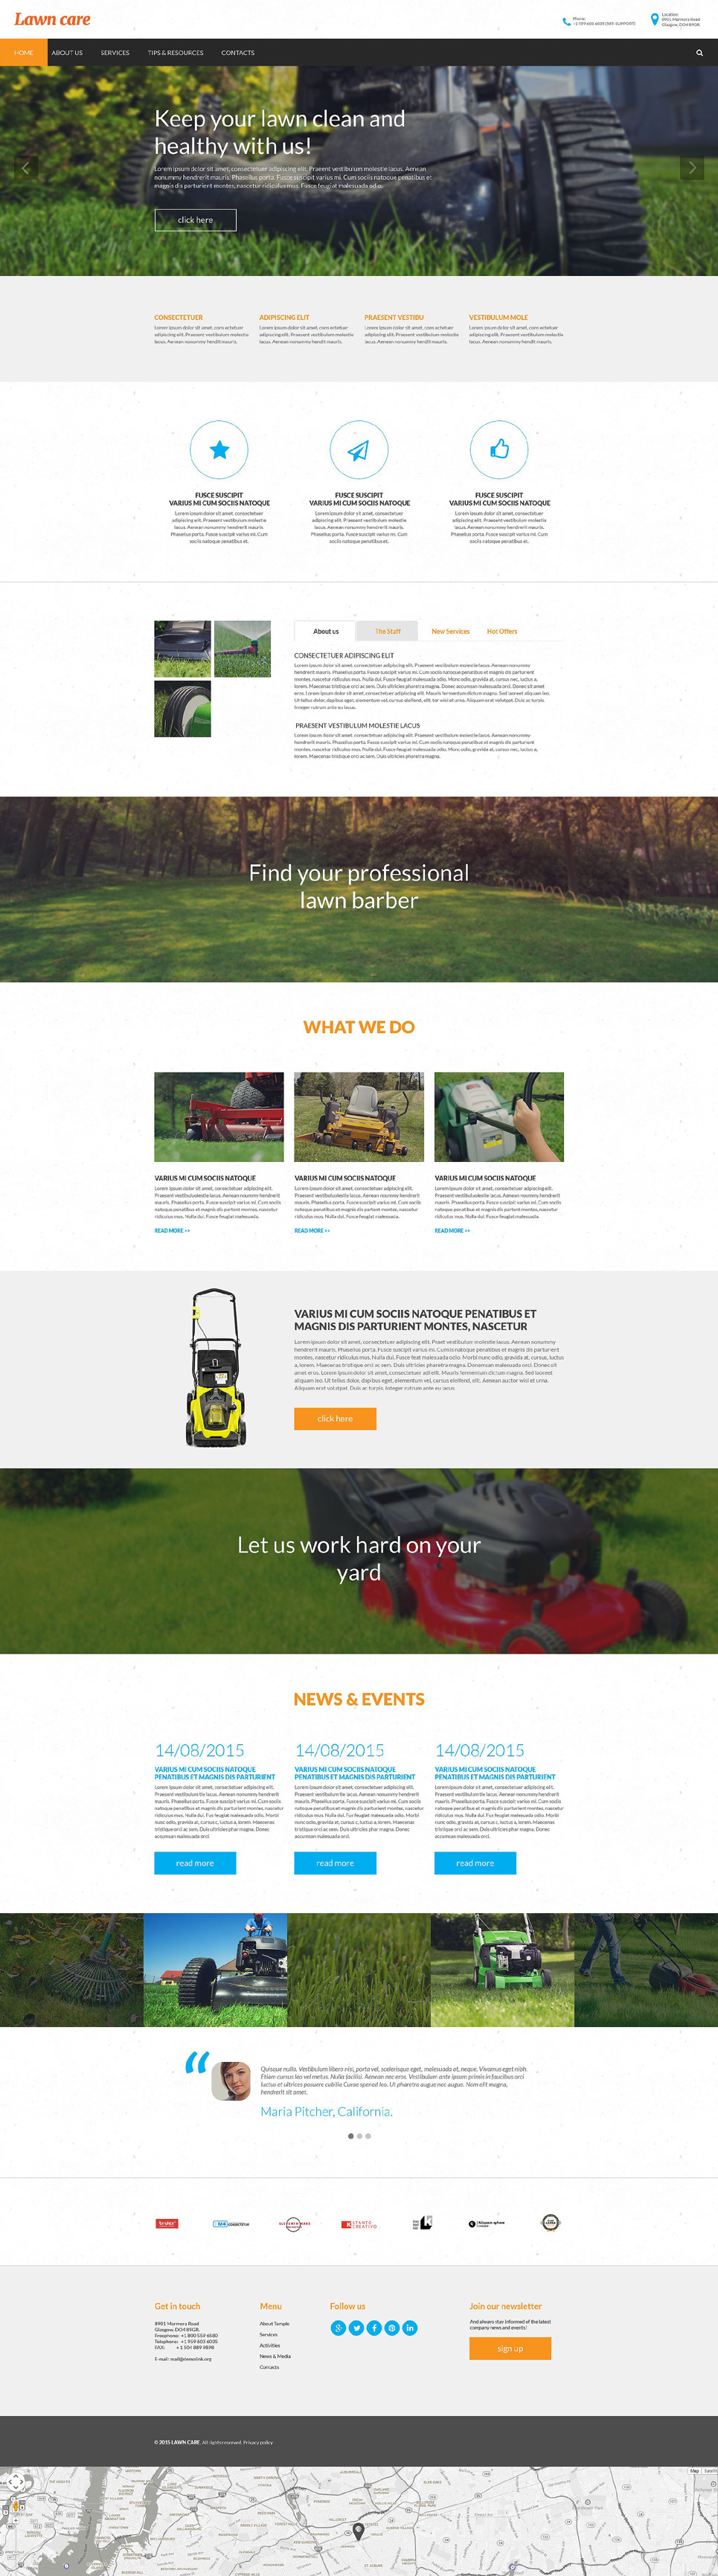 lawn care website template template lawn care website template